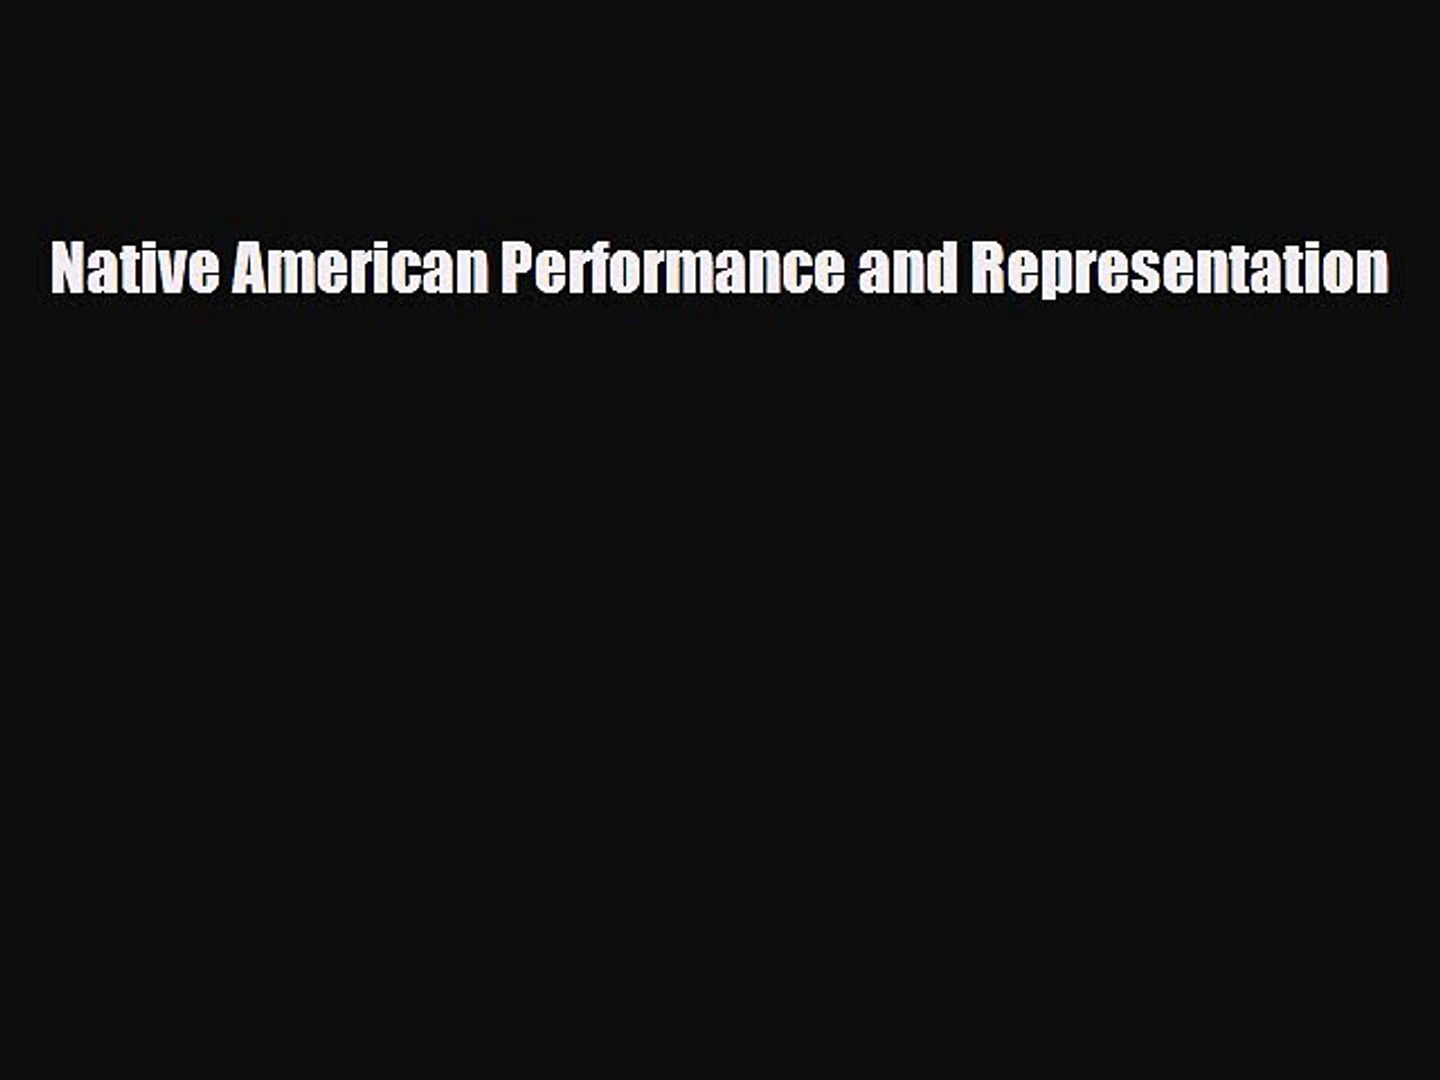 Native American Performance and Representation